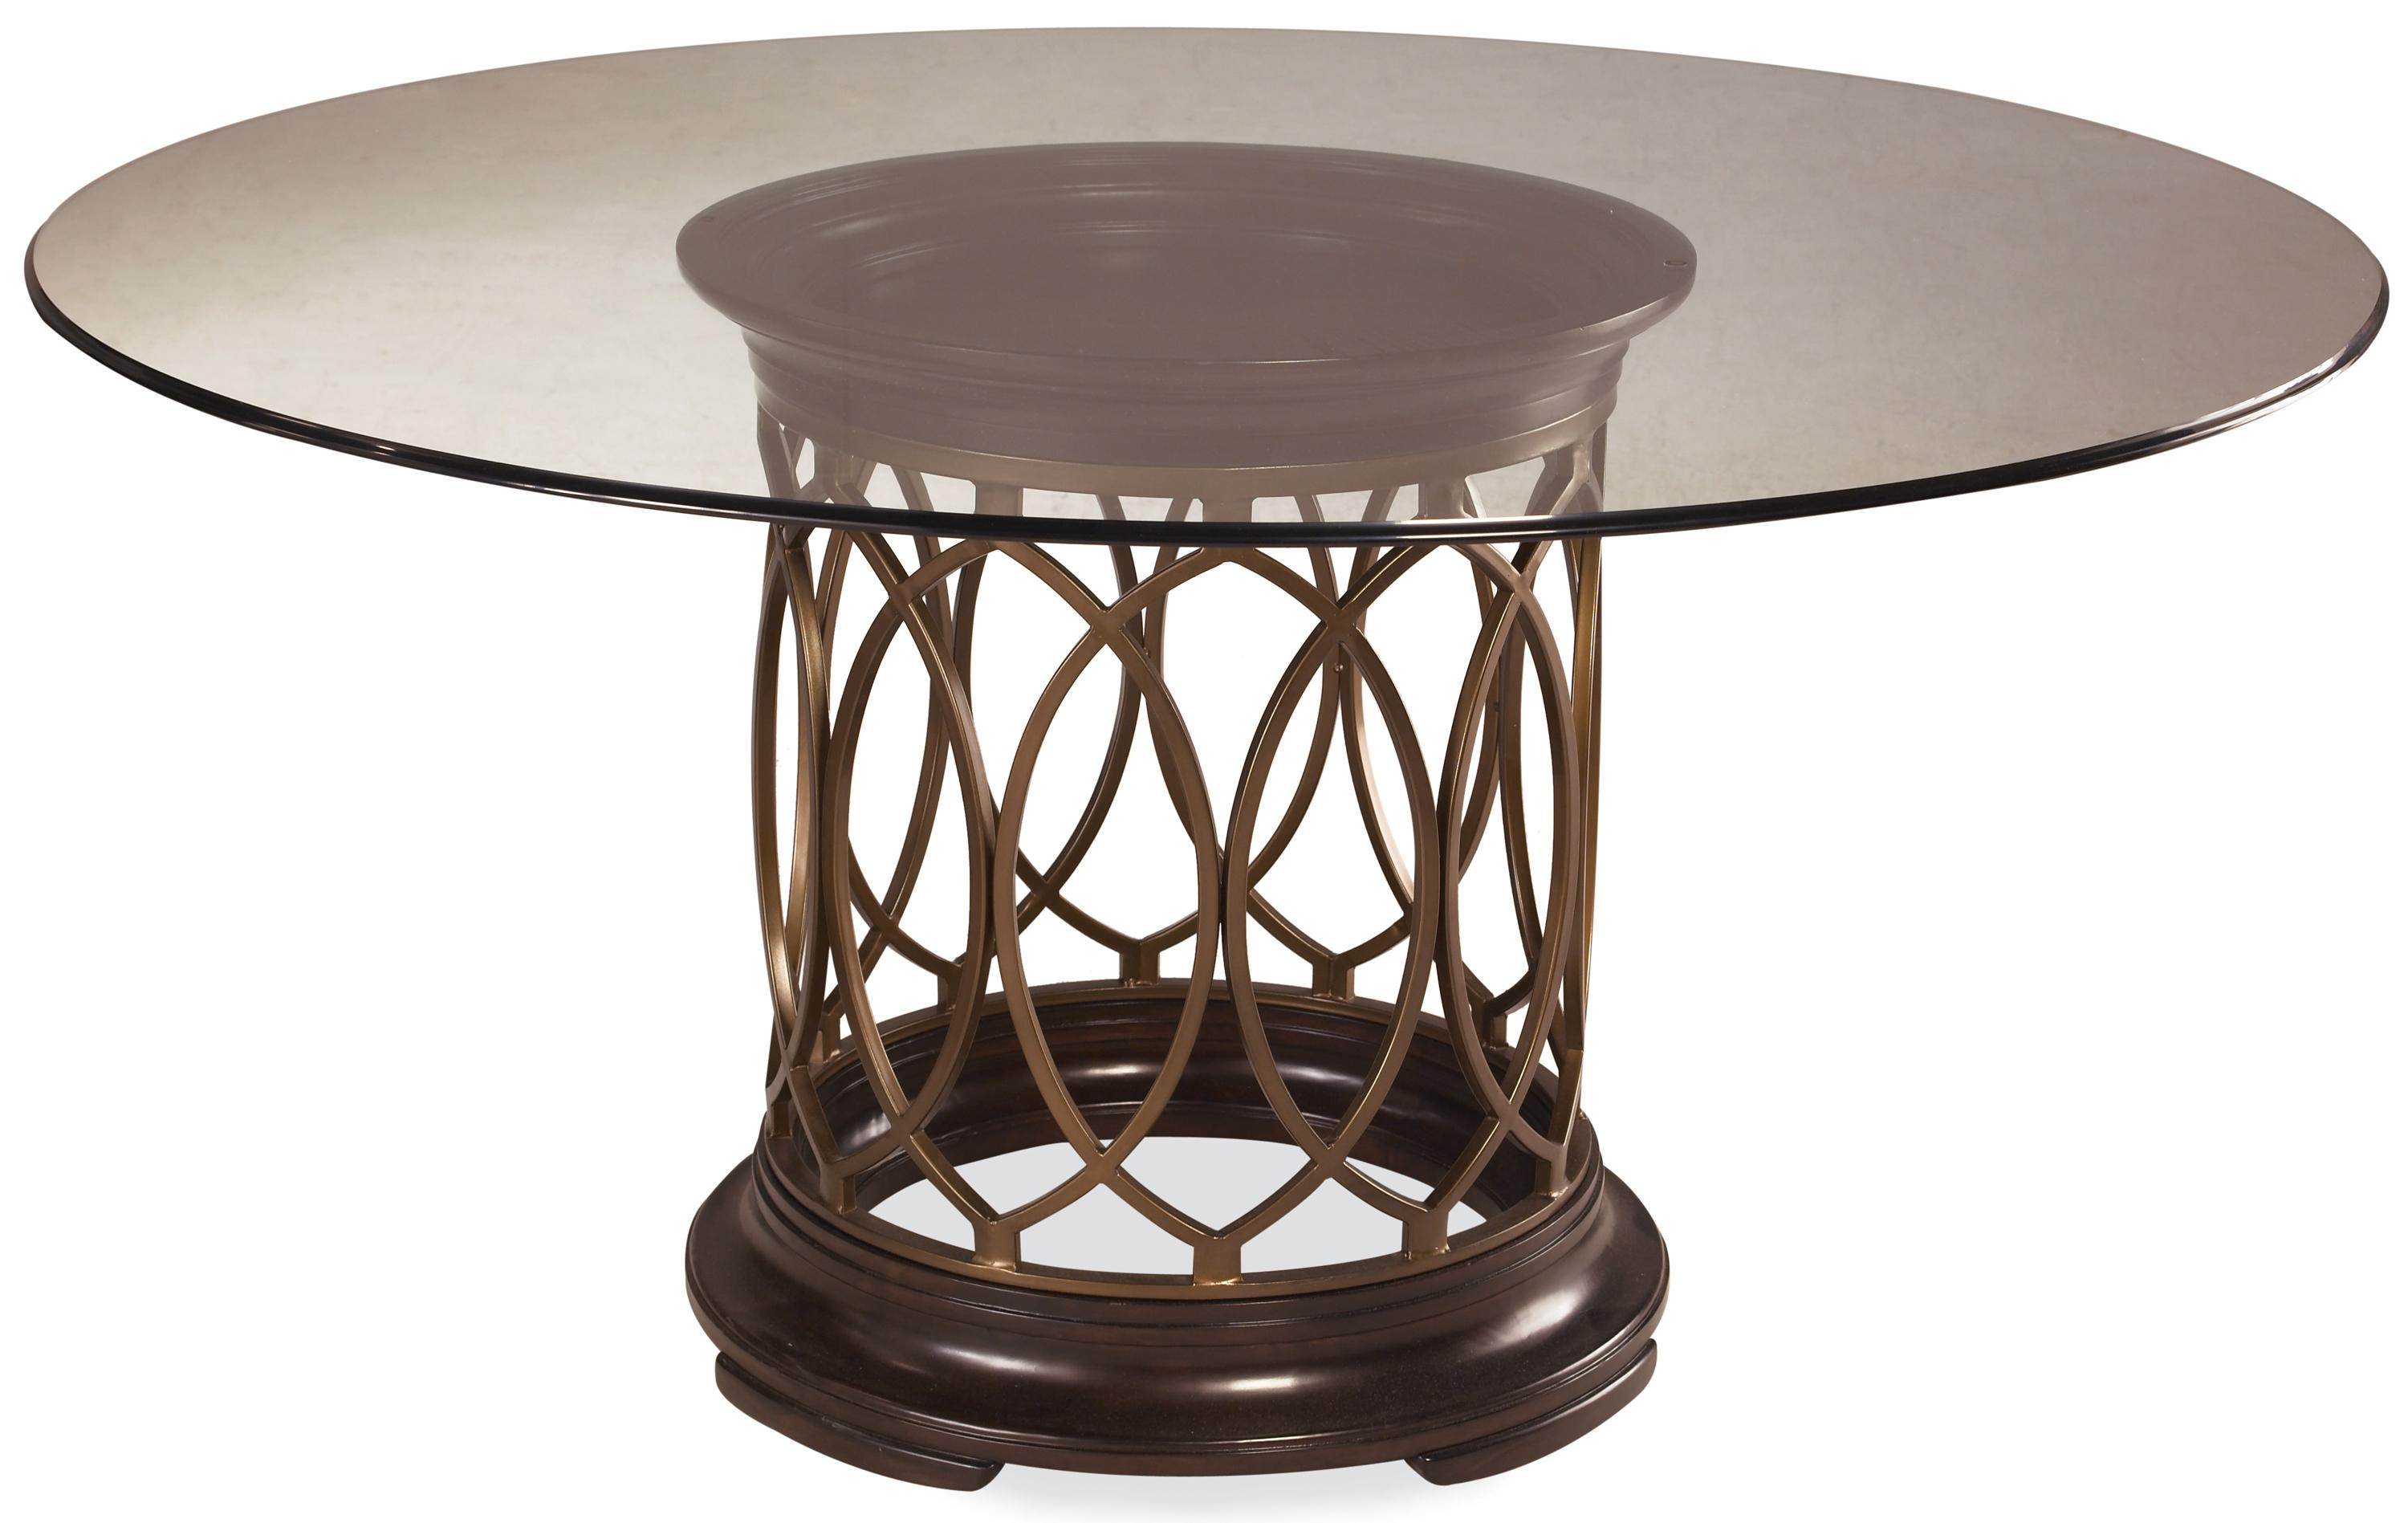 A R T Furniture Inc Intrigue Round Glass Top Dining Table